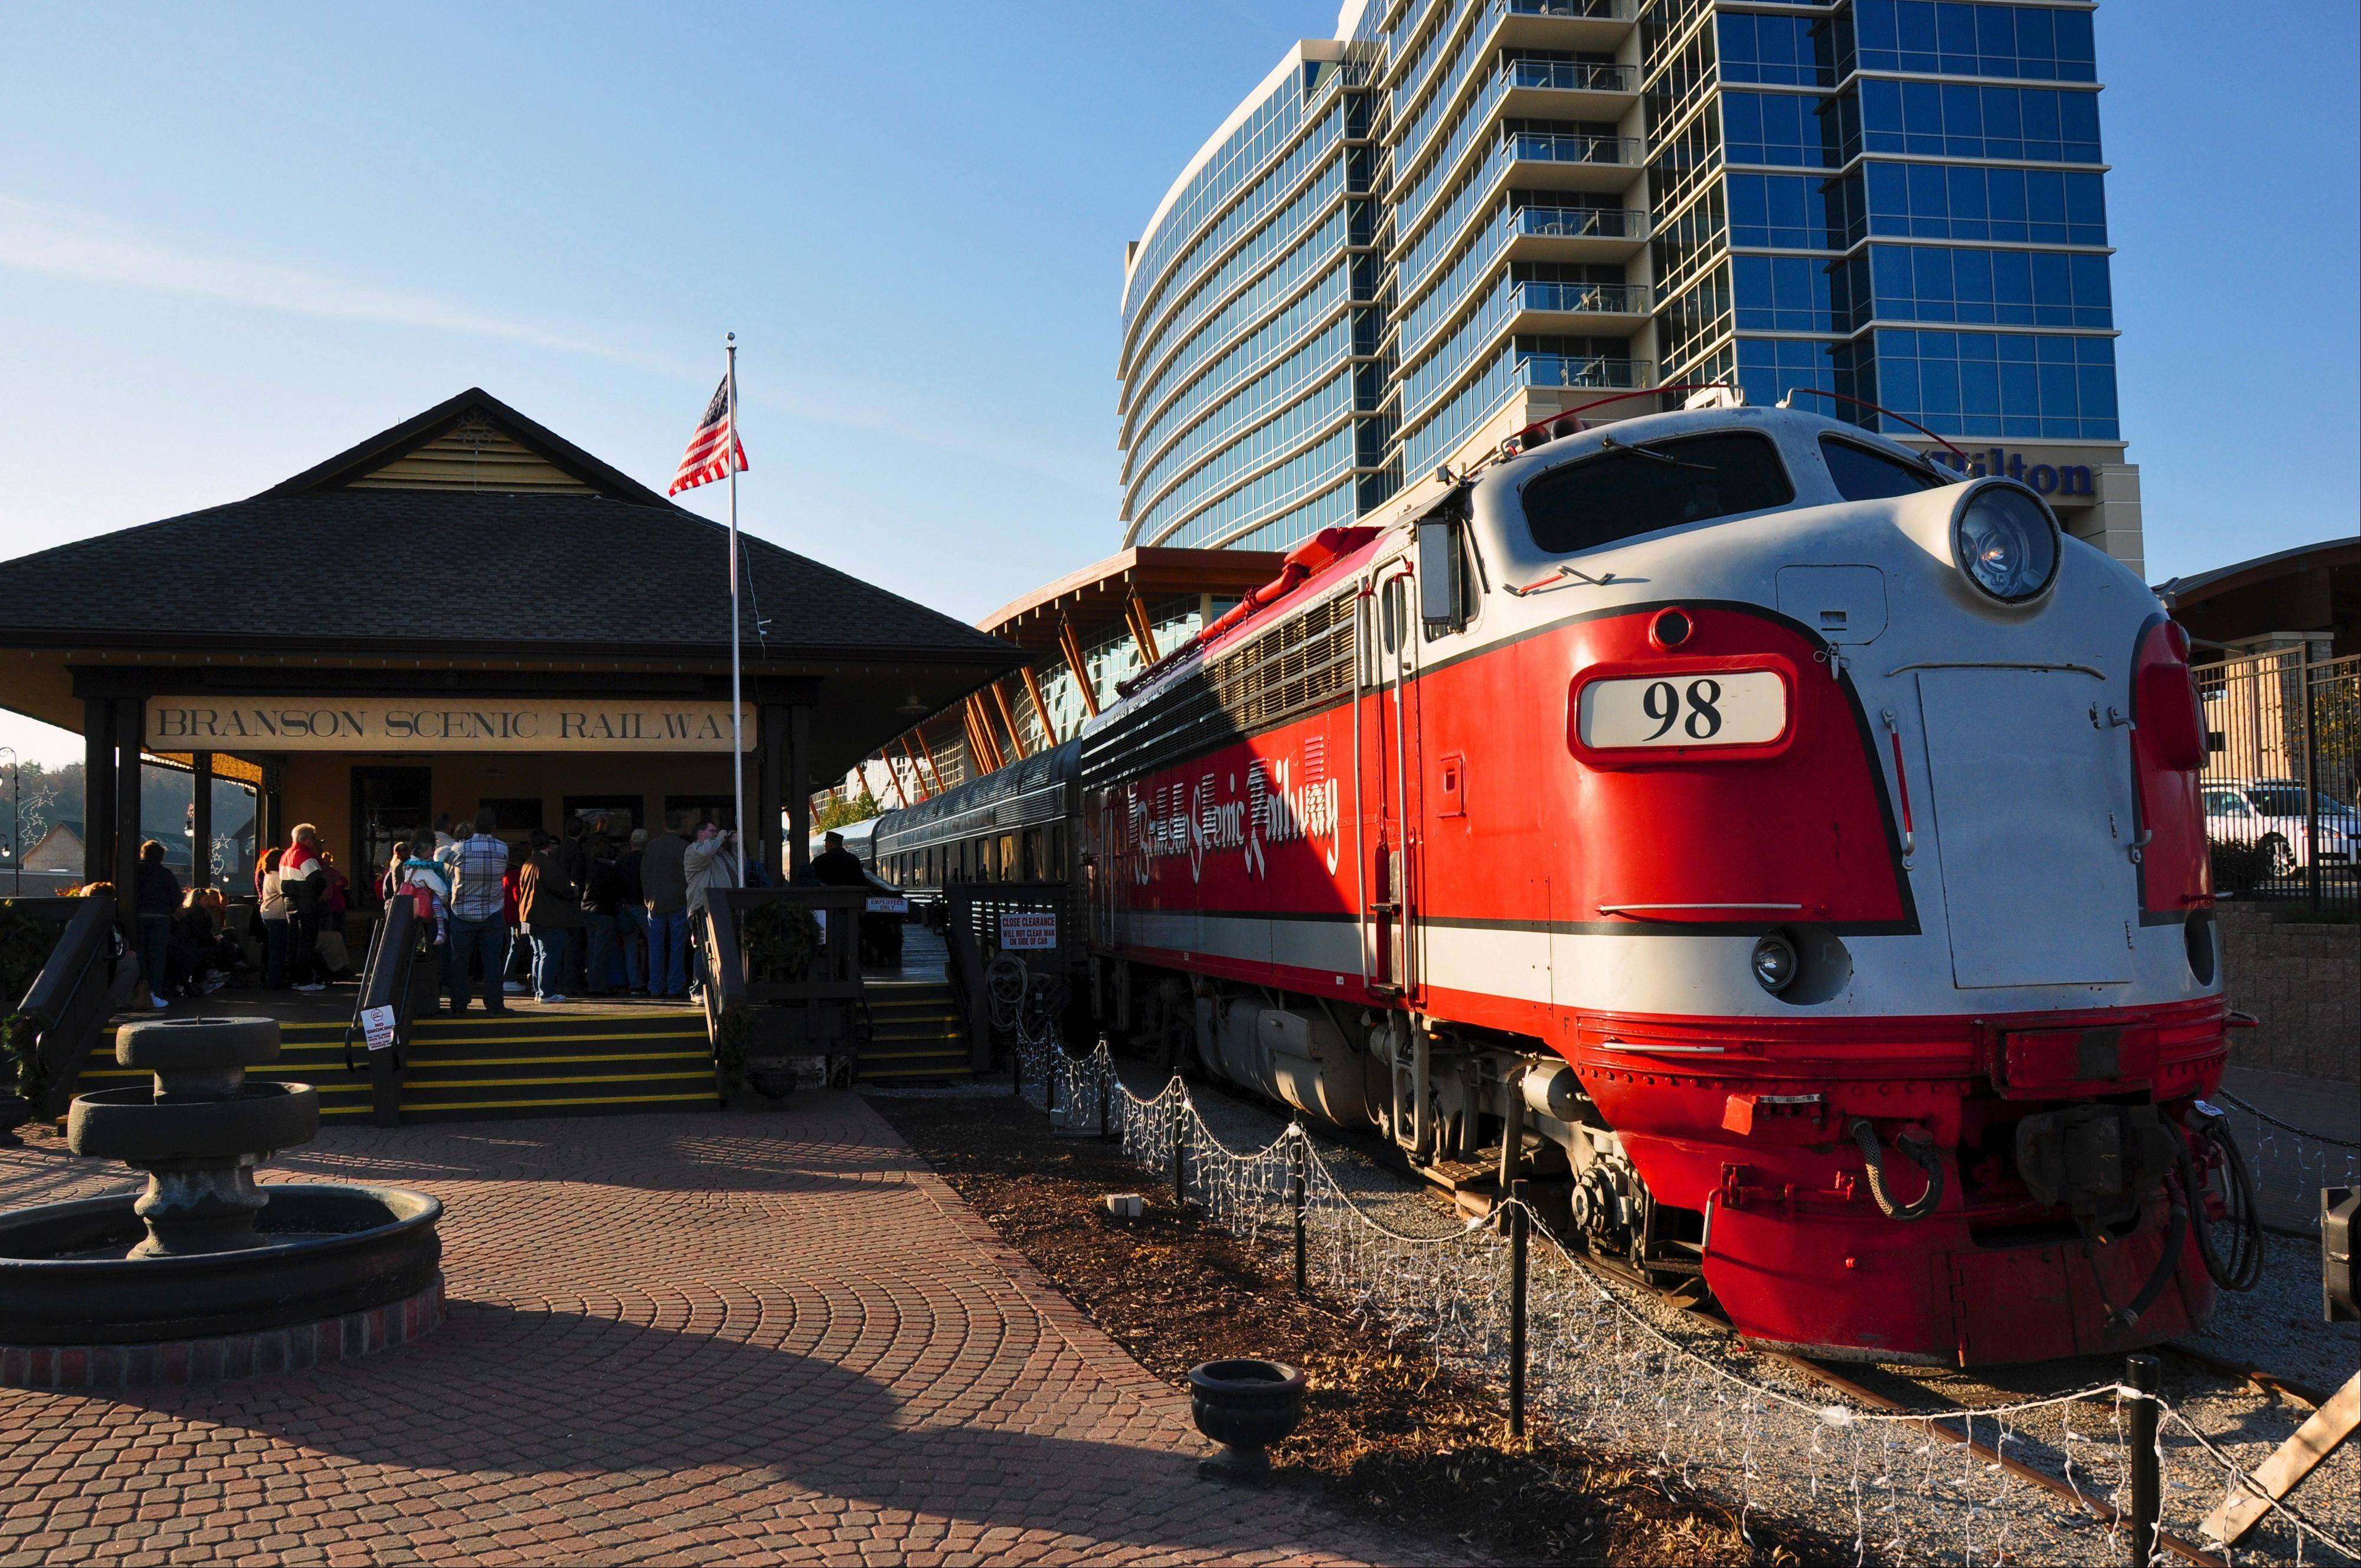 Excursions aboard vintage rail cars of the Branson Scenic Railway depart downtown Branson for the Ozark foothills.